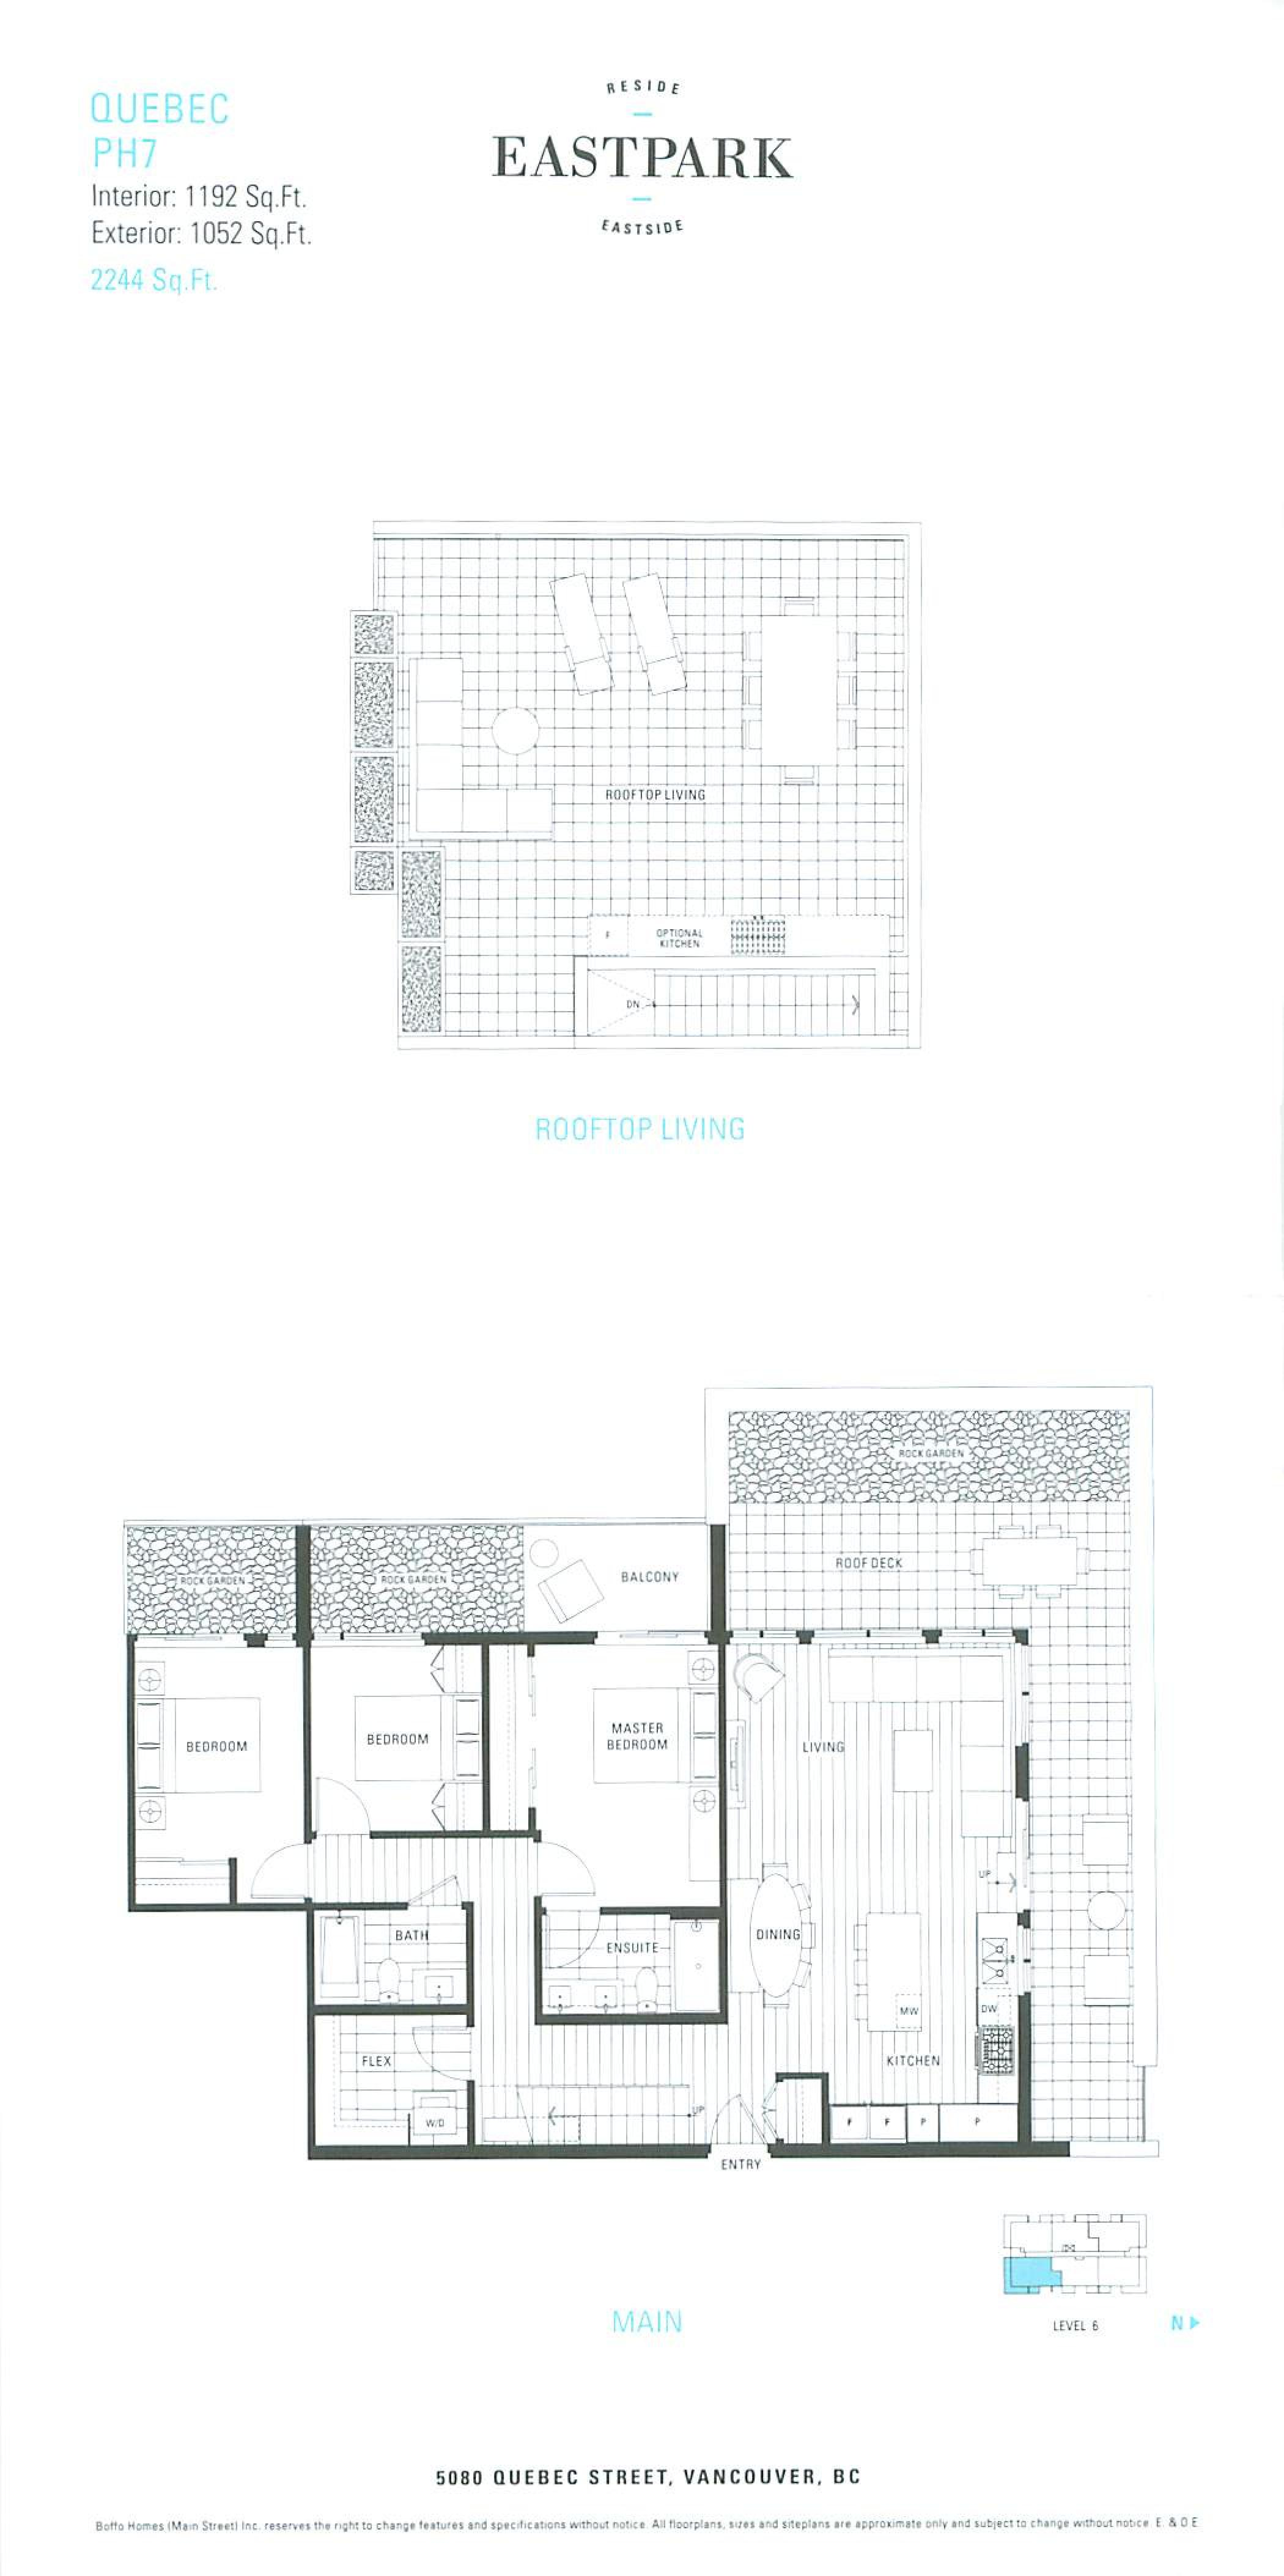 EastPark Quebec Larger Floor Plans Mike Stewart-page-006